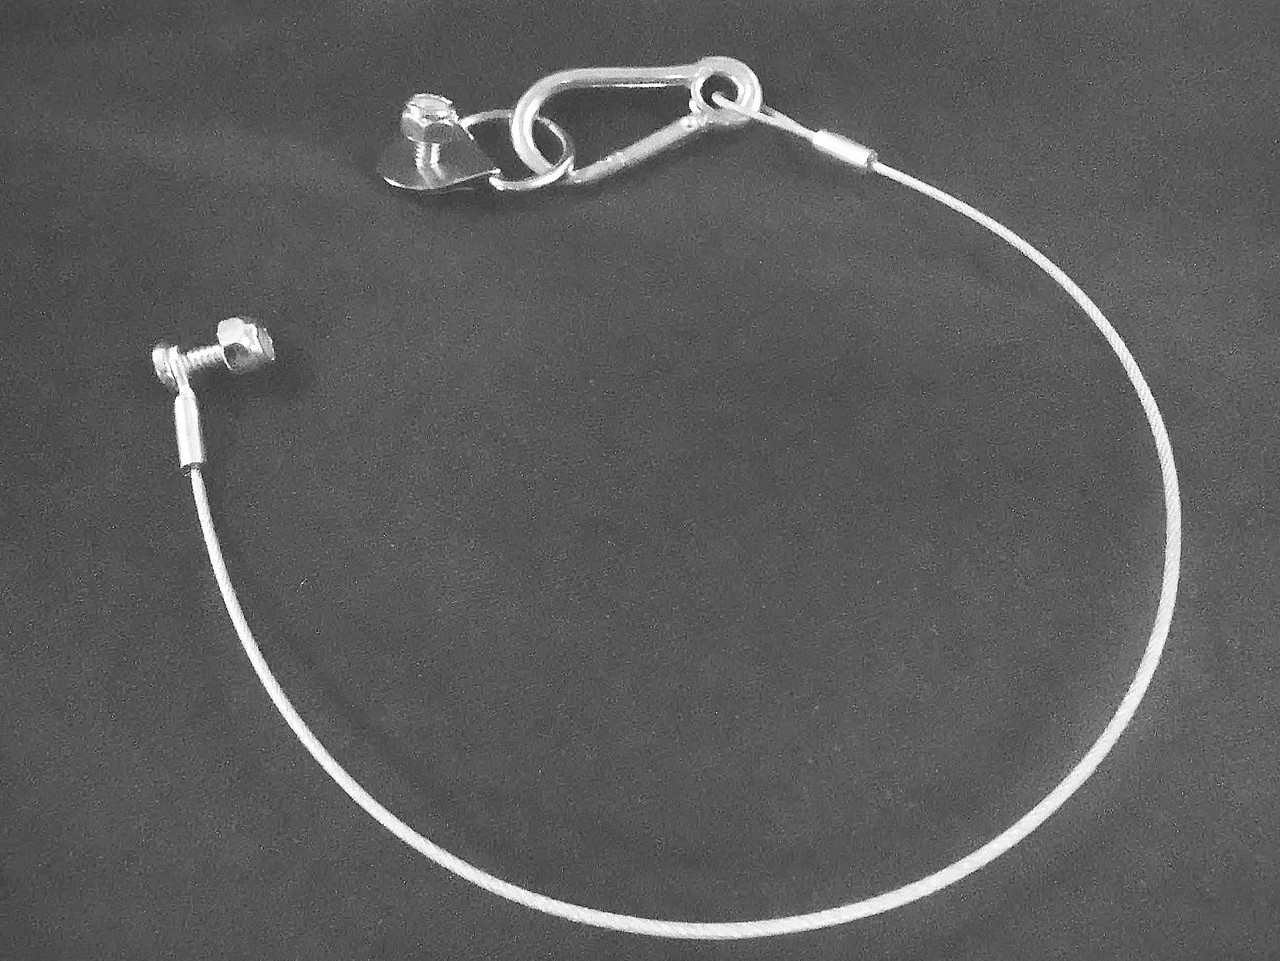 12 Inch Lanyard Cable and Bolt Assembly